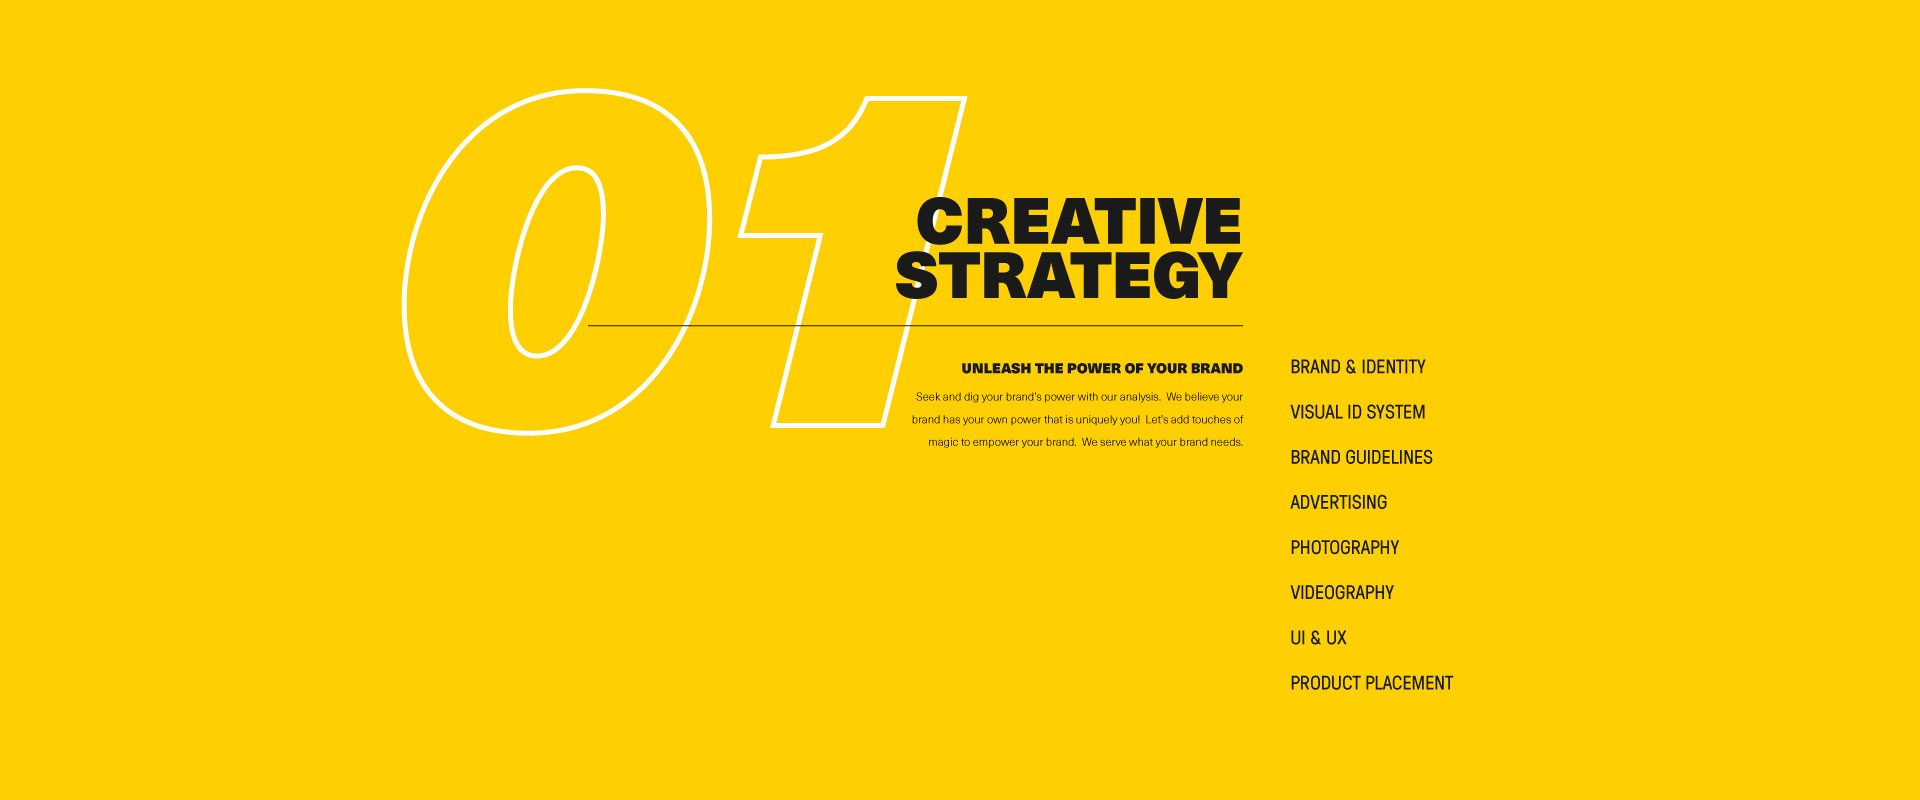 Creative Strategy